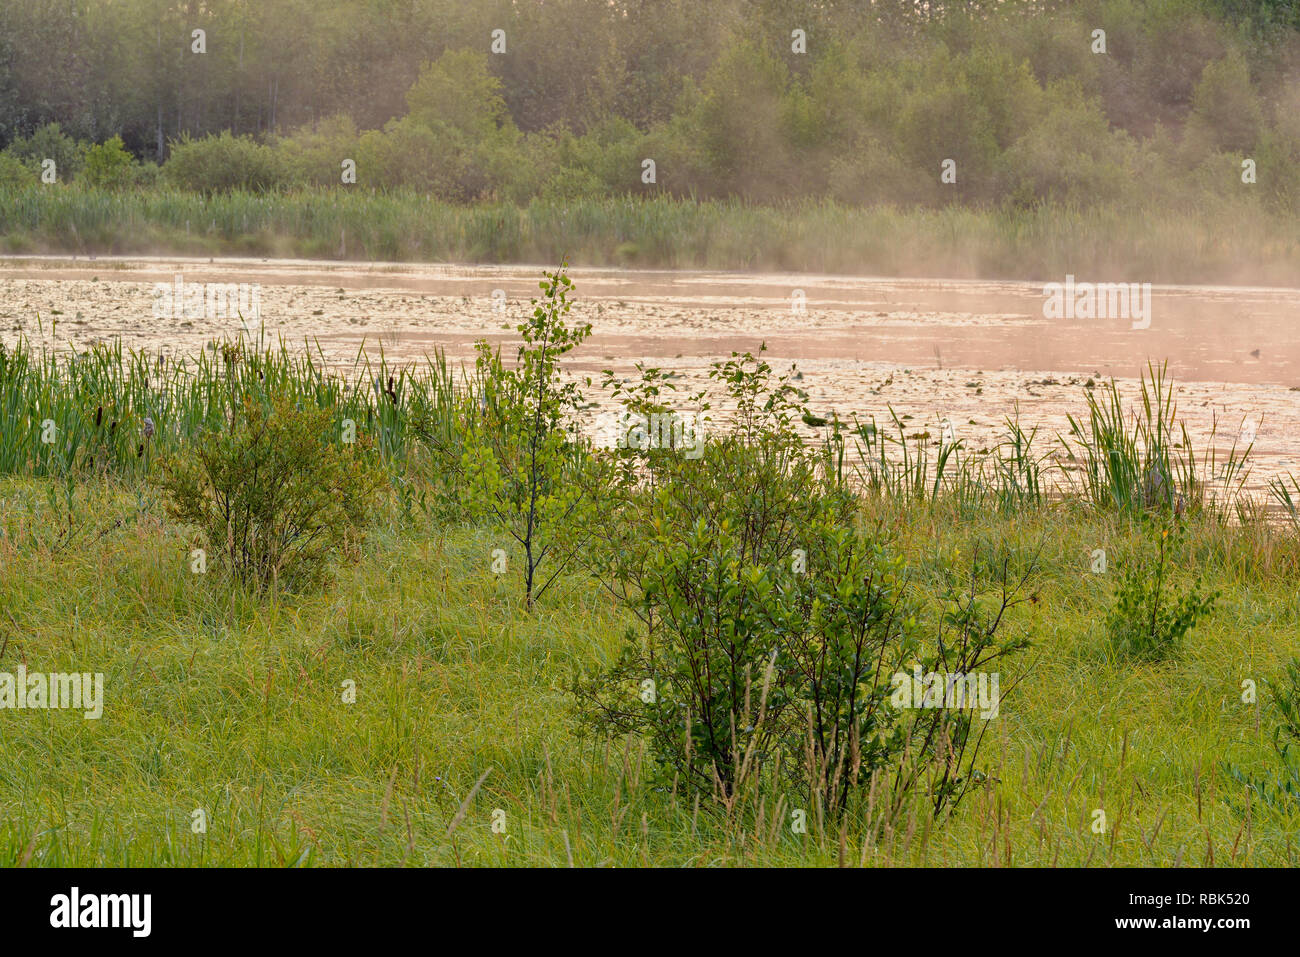 Wetland channels and flowers, Elk Island National Park, Alberta, Canada - Stock Image